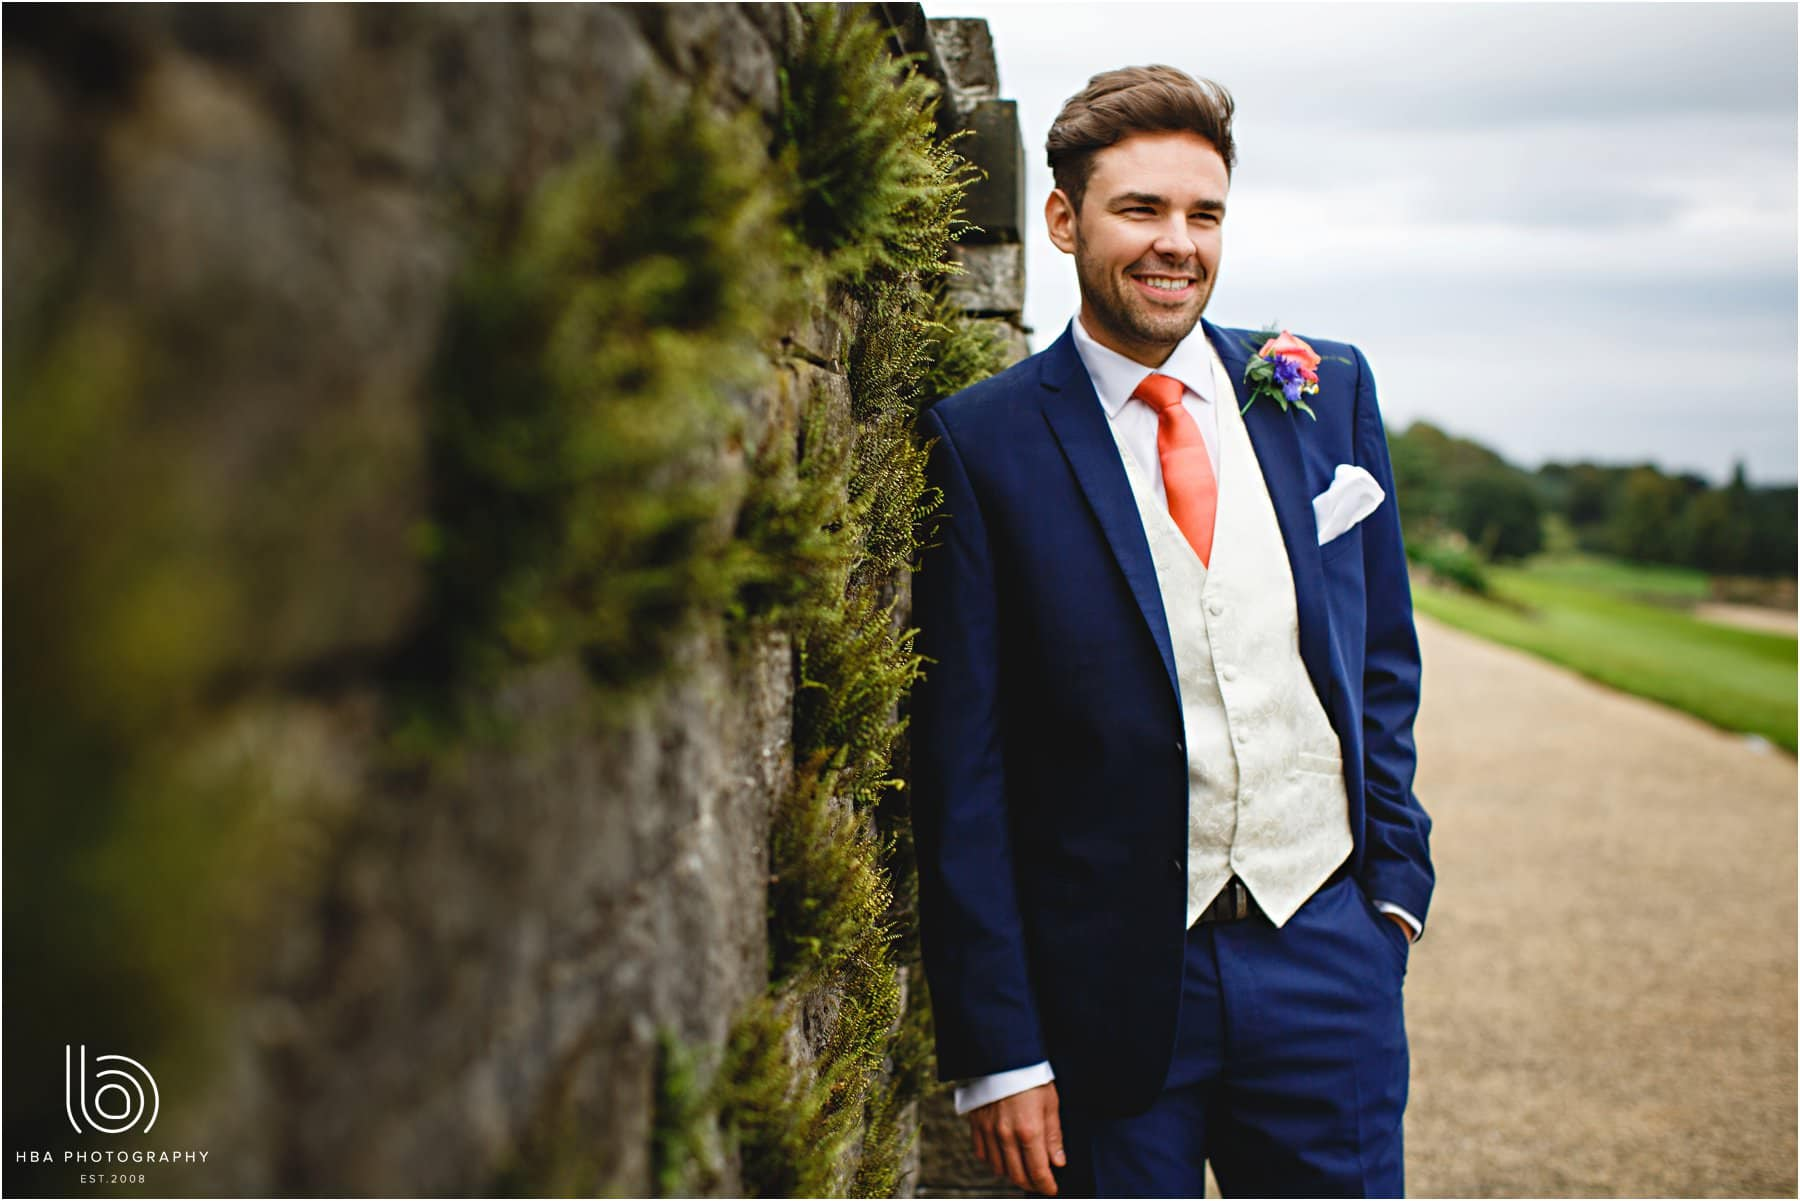 the groom leaning against a wall